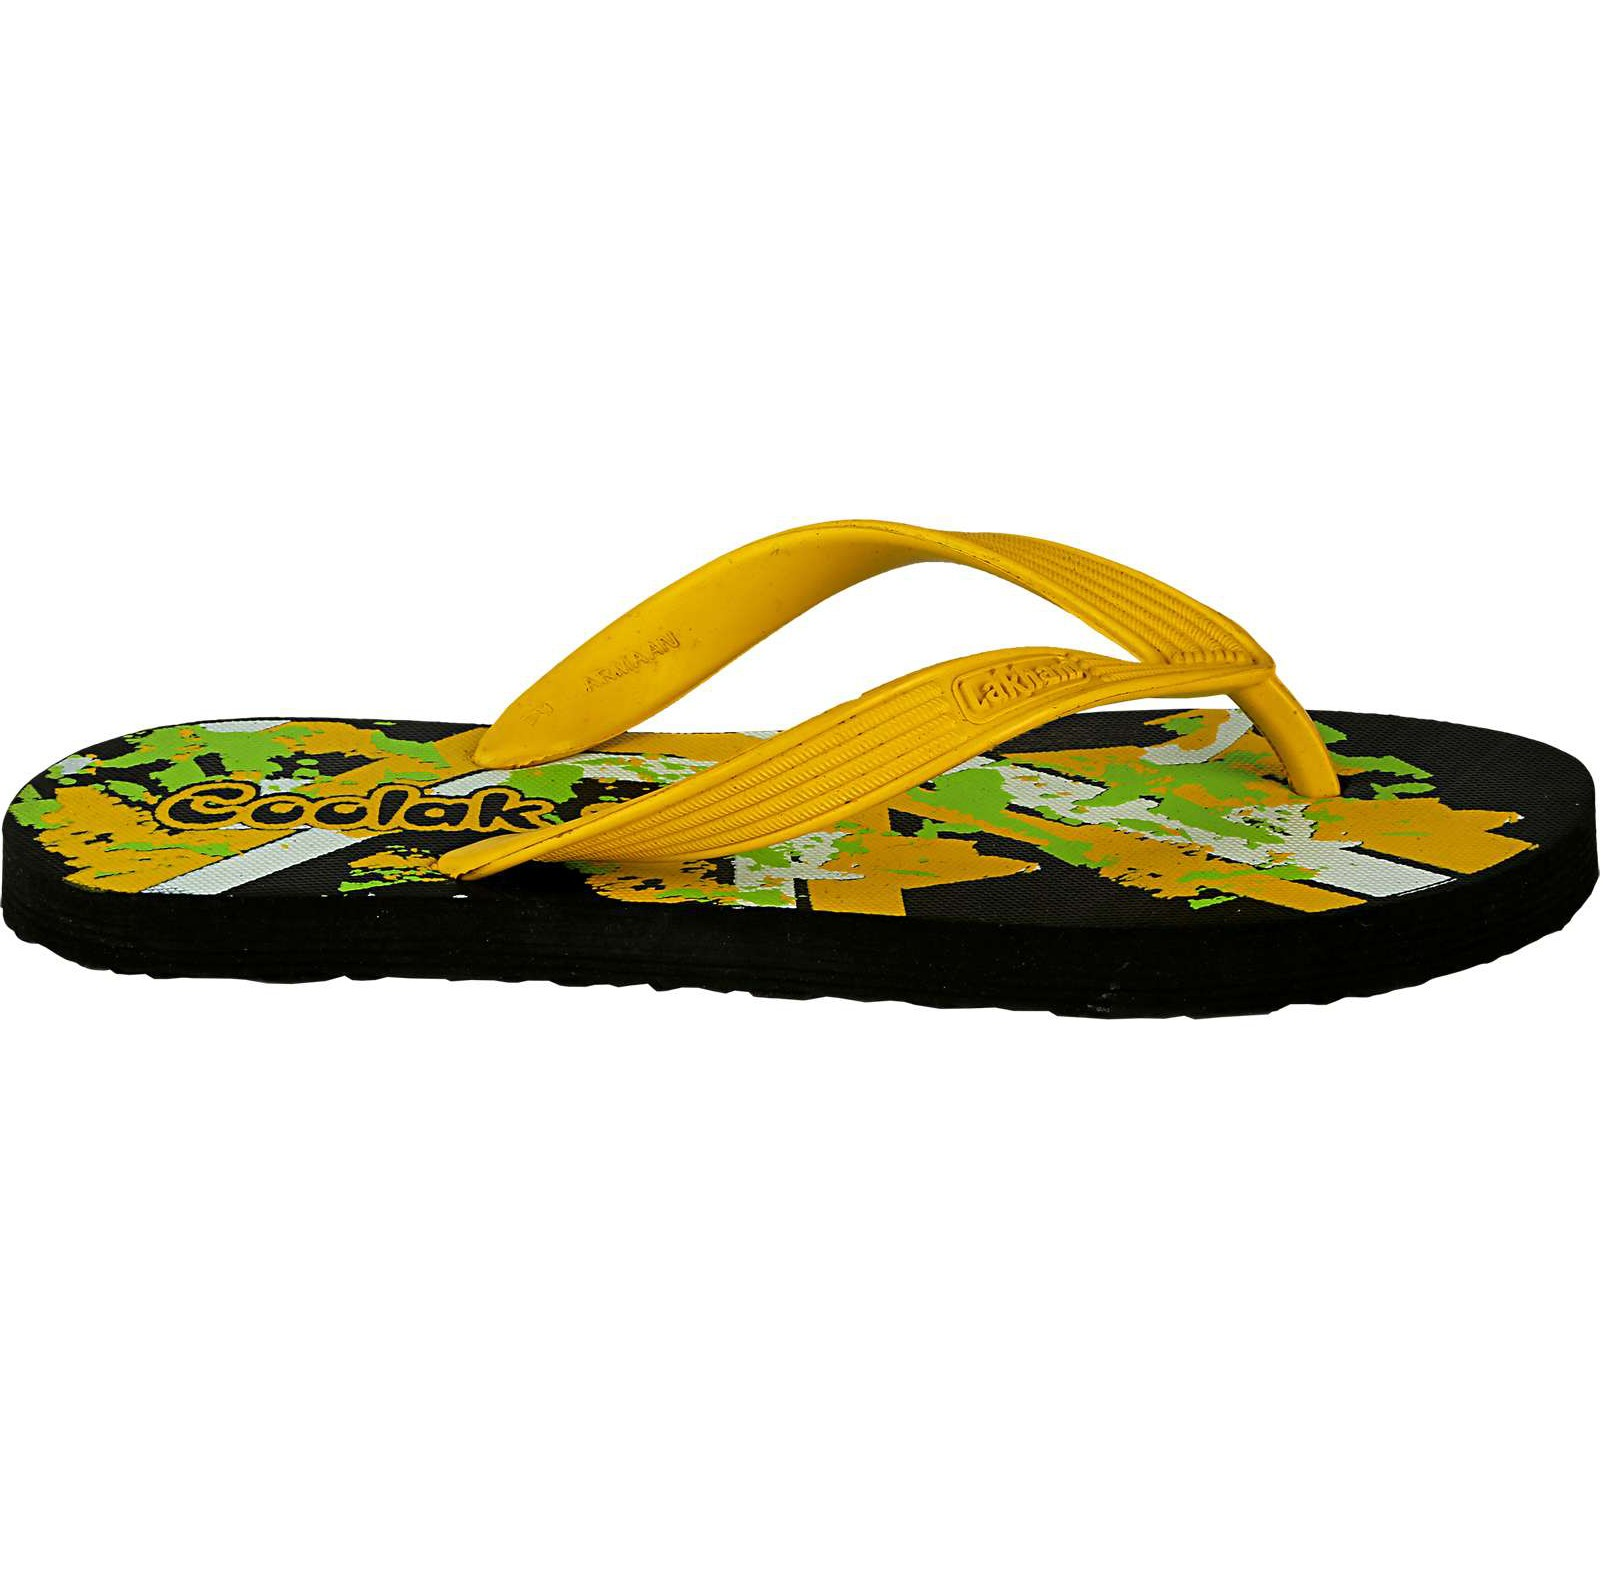 COOLAK HAWAI 851 YELLOW BLACK